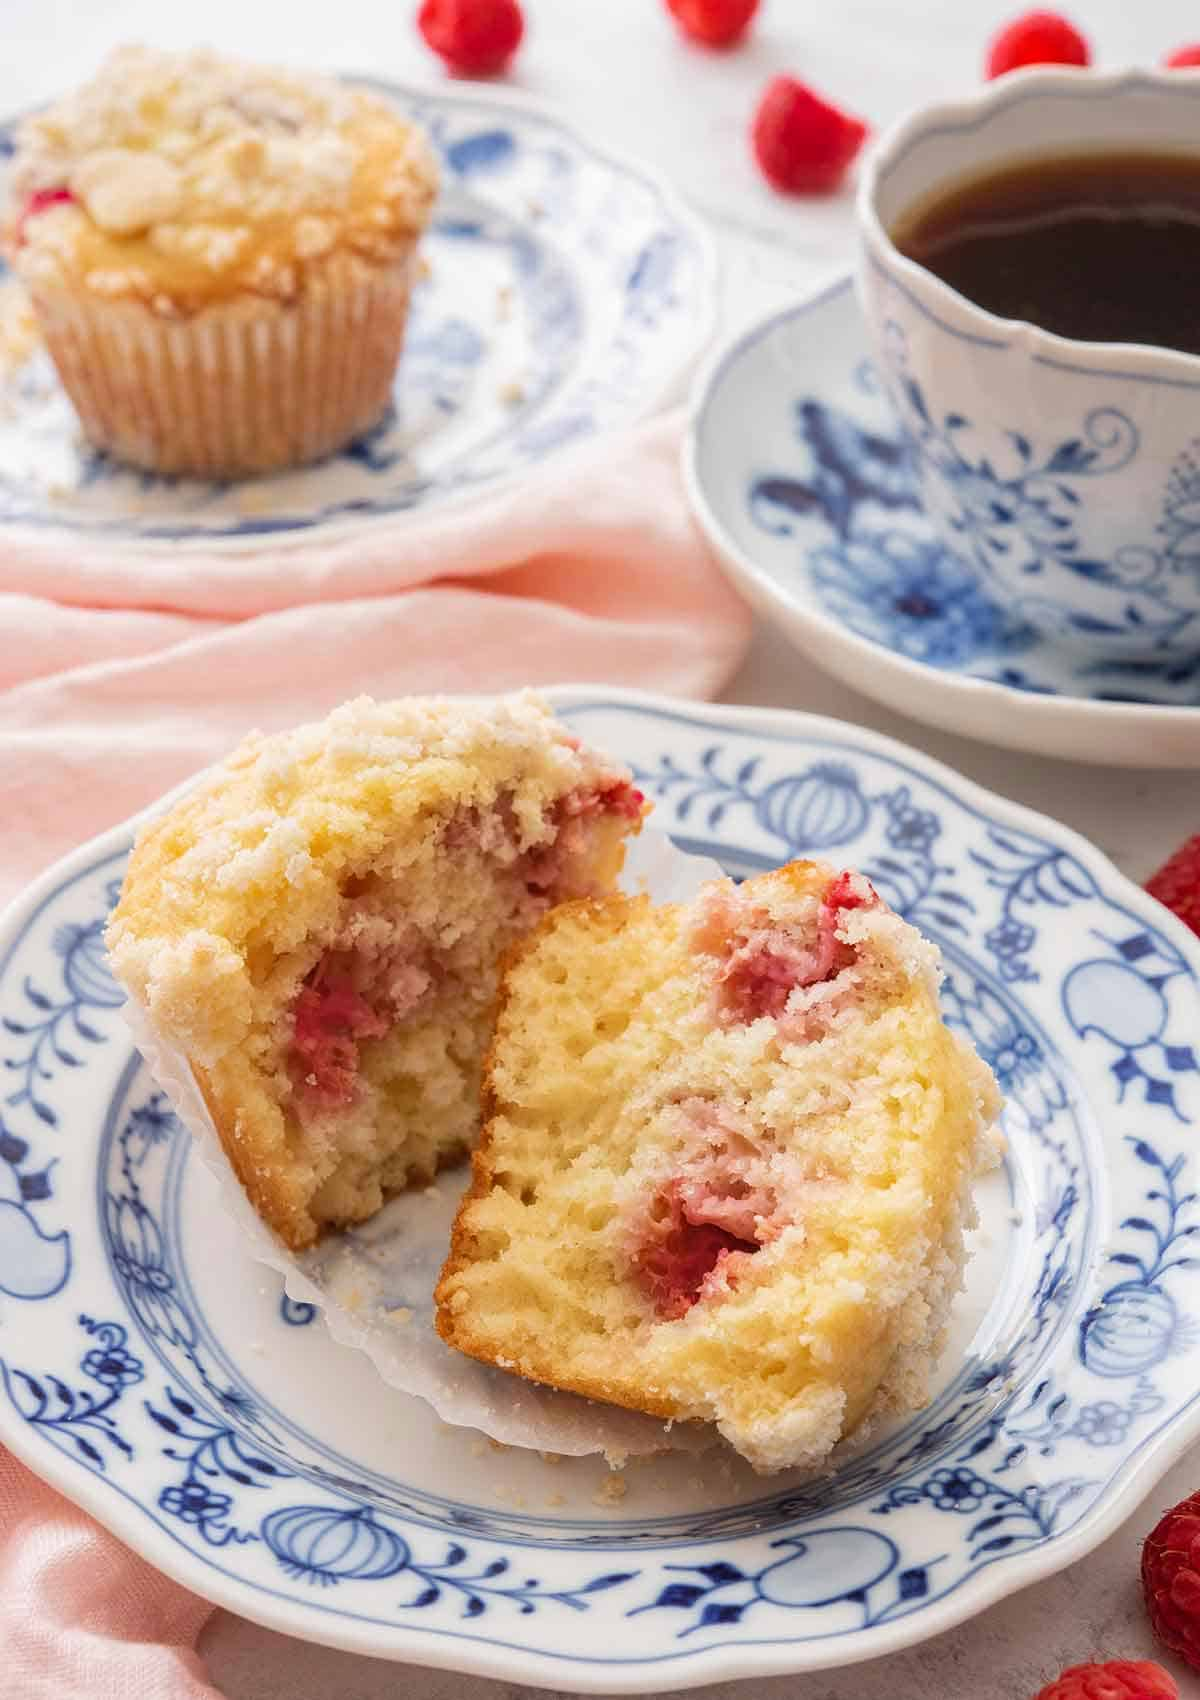 A raspberry muffin cut in half on a blue and white plate beside a cup of coffee and another muffin in the back.